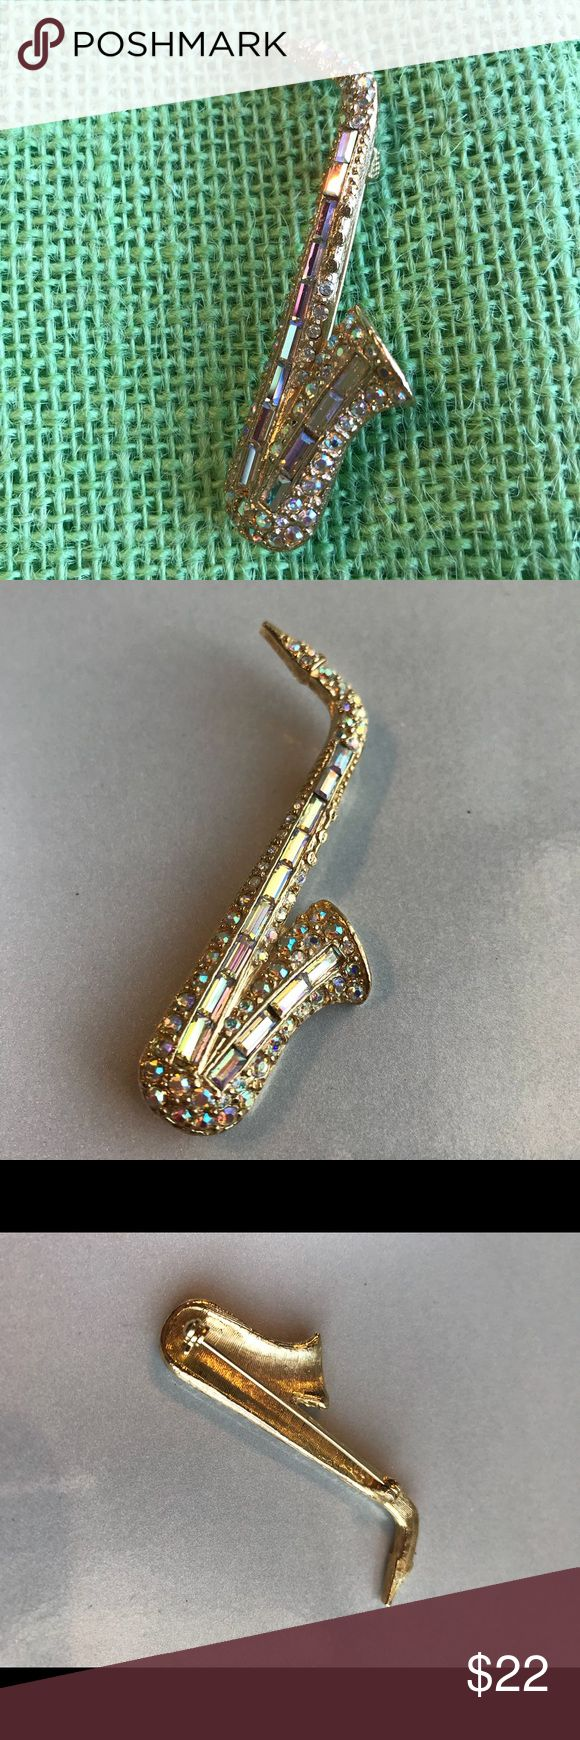 Saxophone brooch Cute Saxophone brooch pin for your music lover Very good condition  2 1/2 long See all pictures Jewelry Brooches